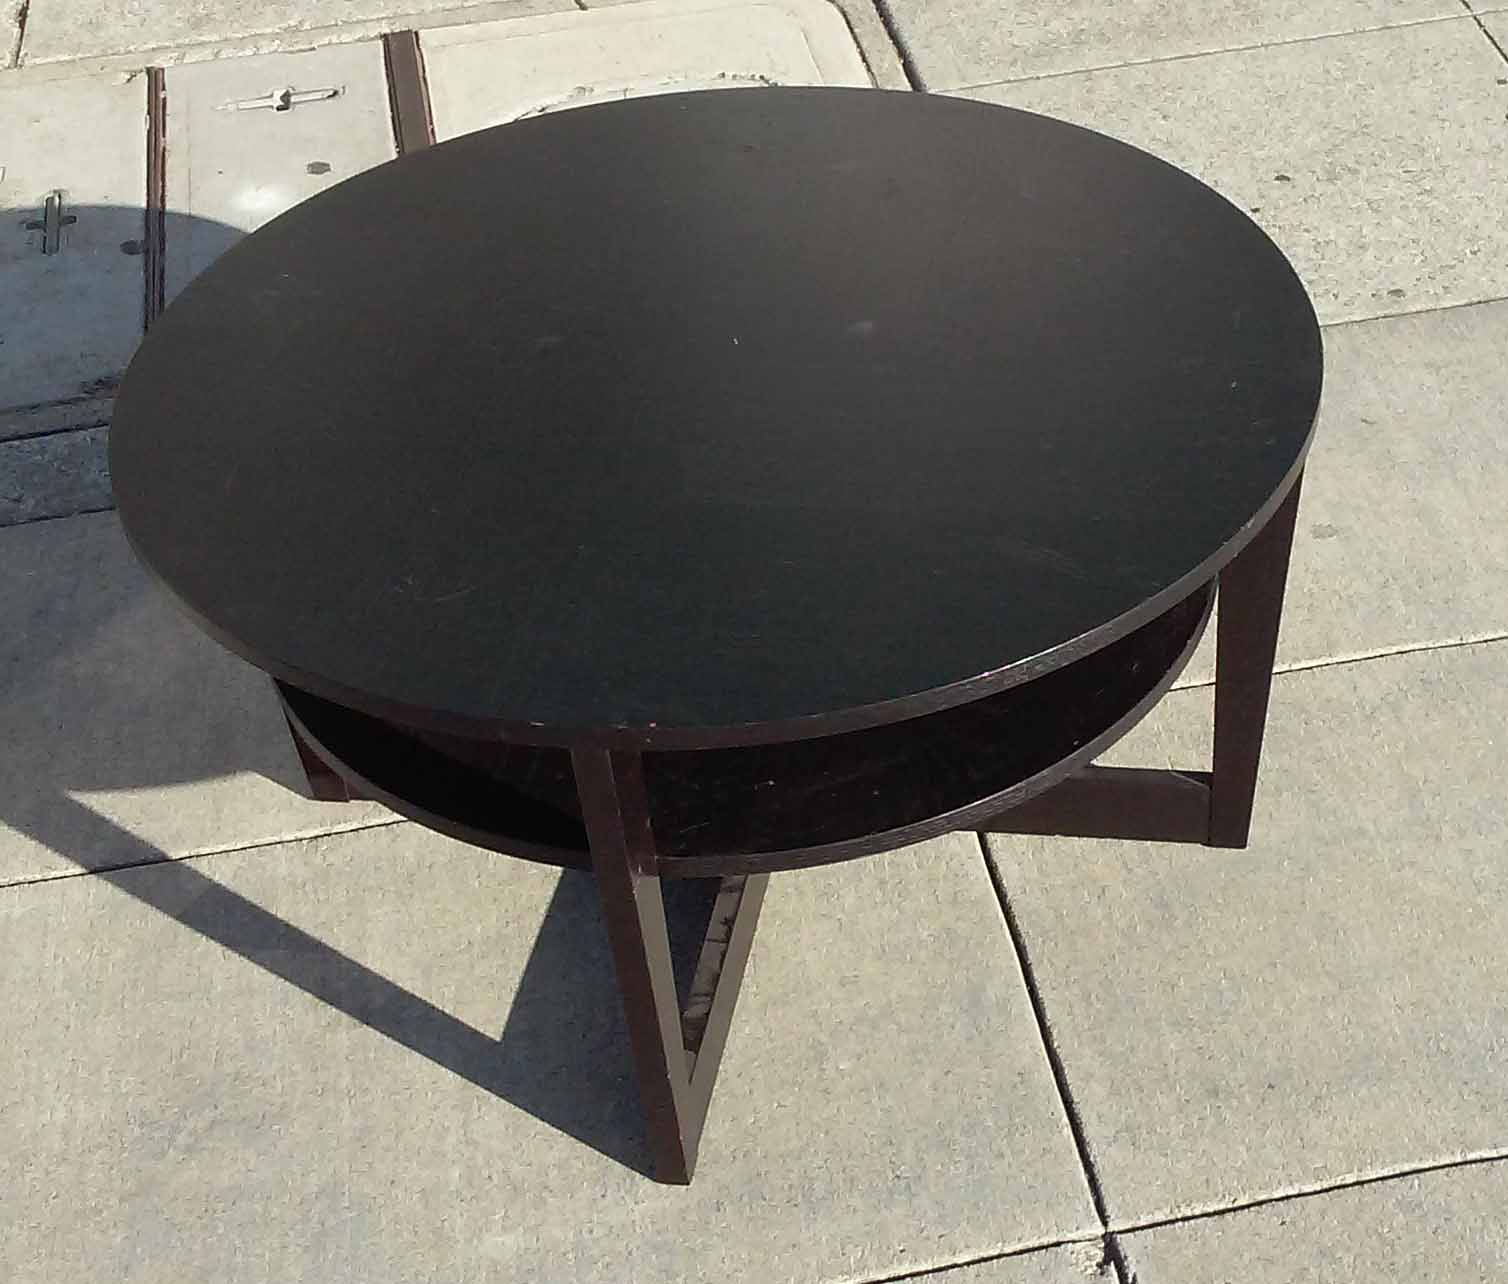 Black Coffee Table Curved: UHURU FURNITURE & COLLECTIBLES: SOLD Ikea Black Round